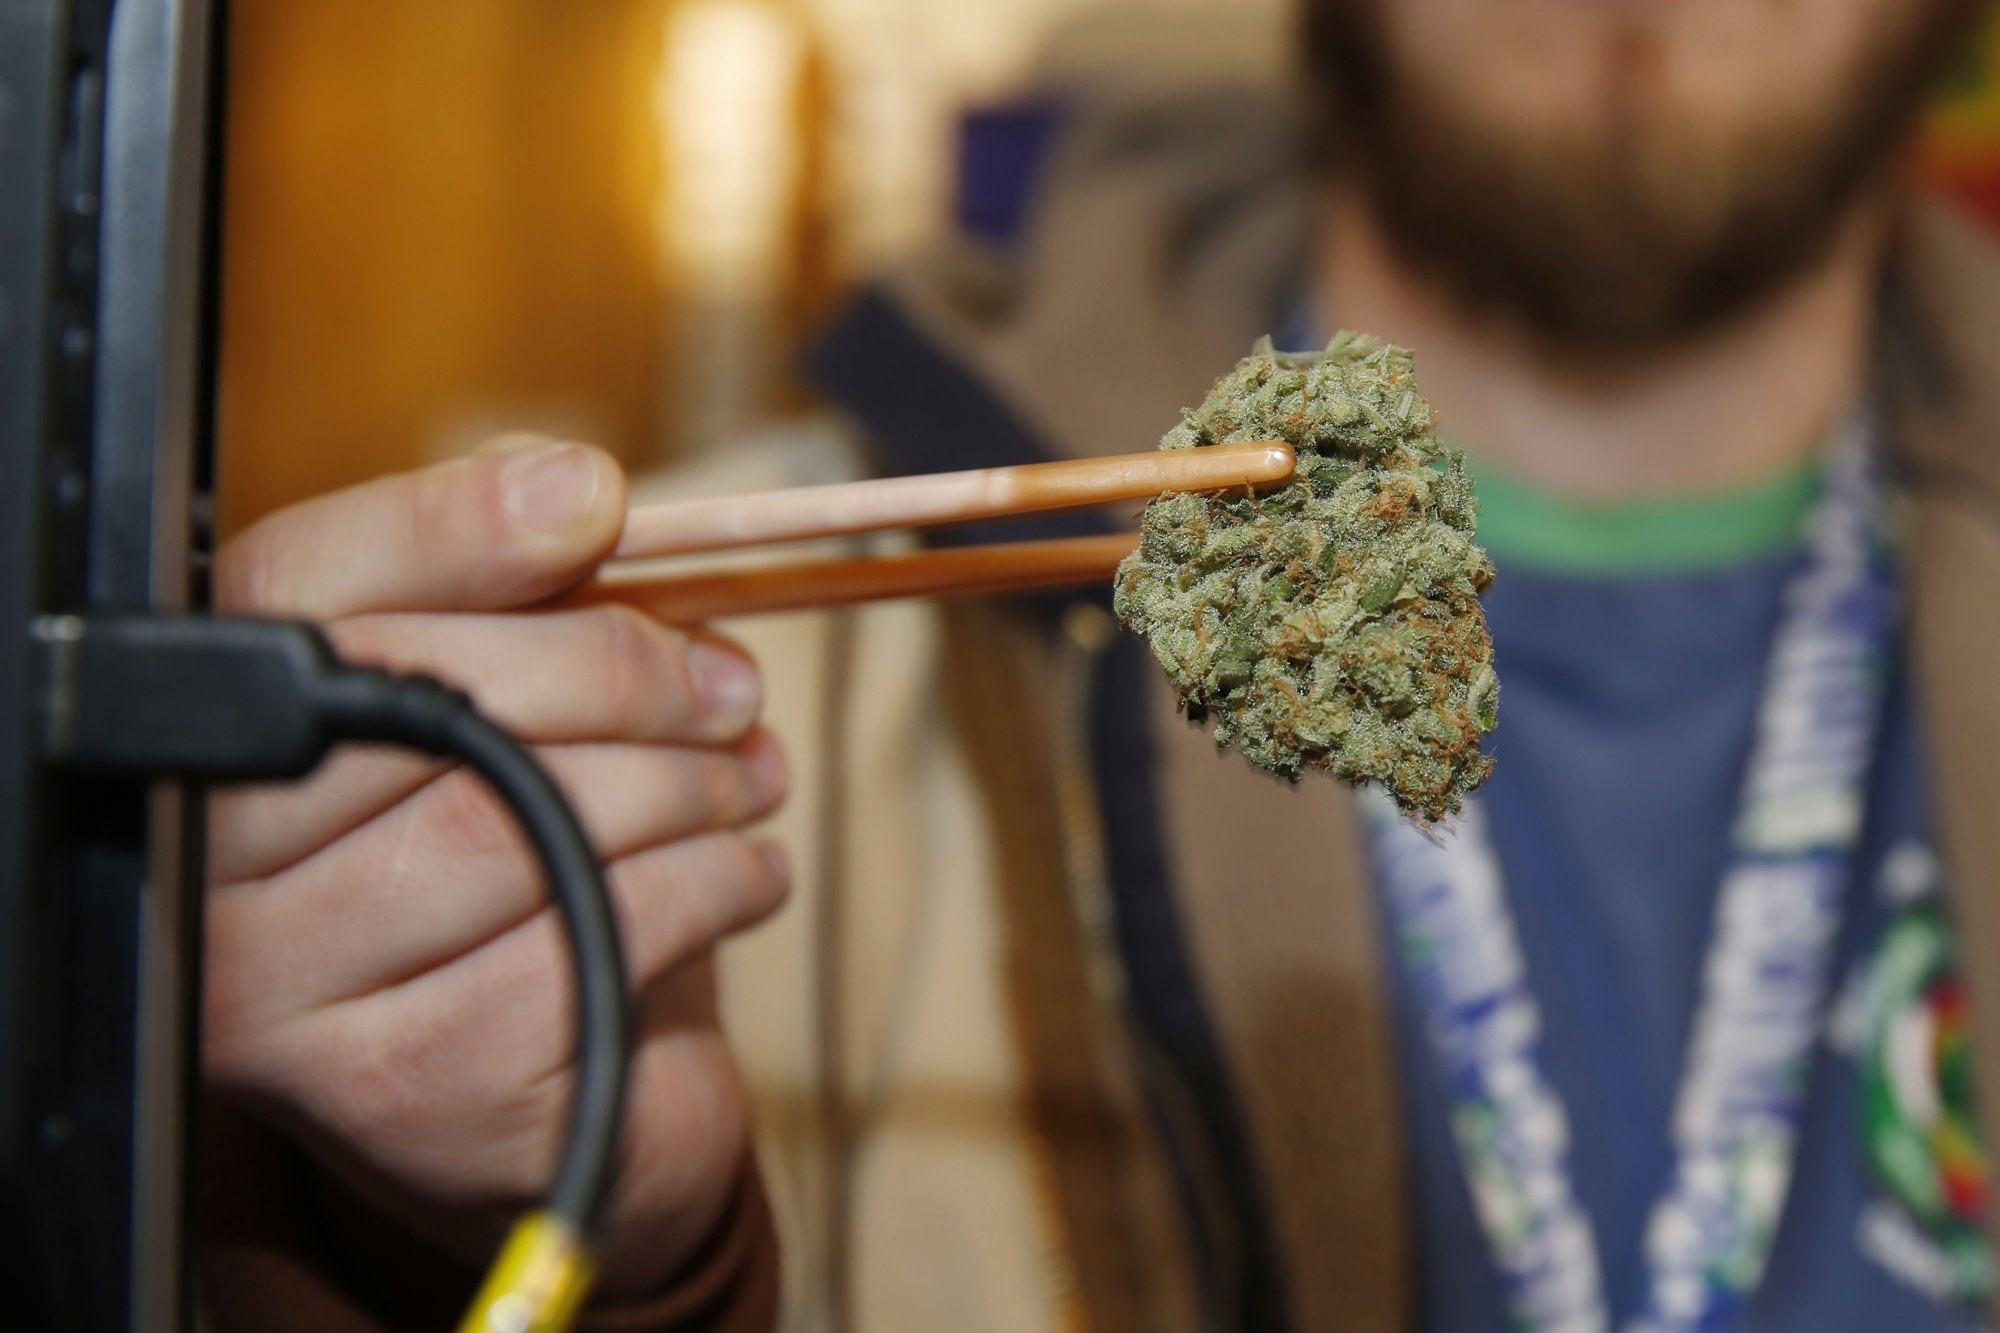 AP – Smoking strong pot daily raises psychosis risk, study finds